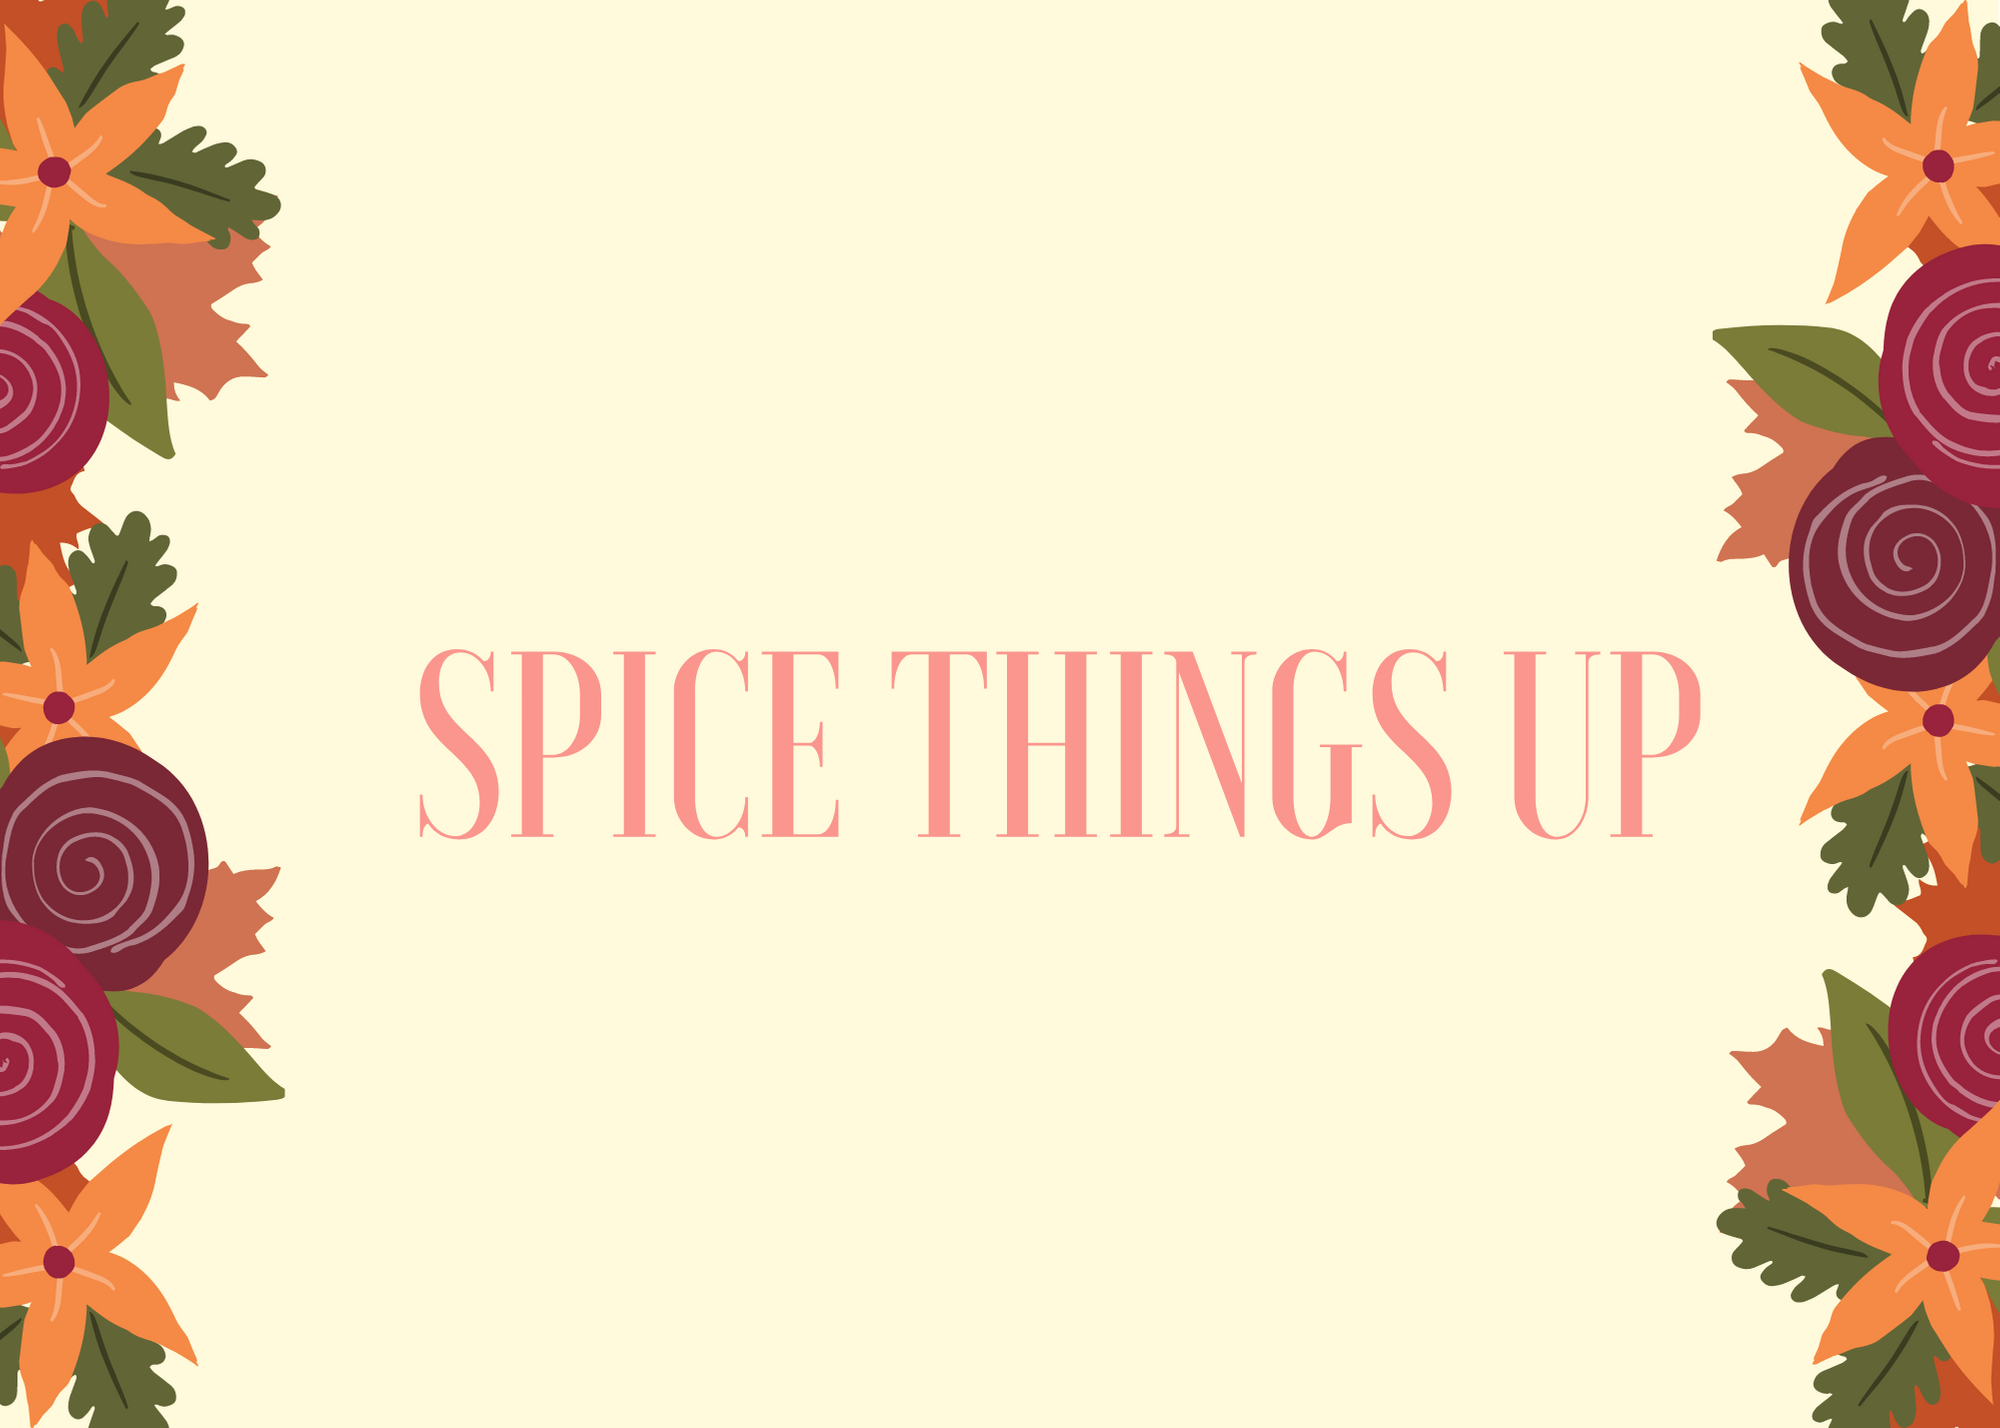 Funny Fall Instagram Caption About Spice Things Up